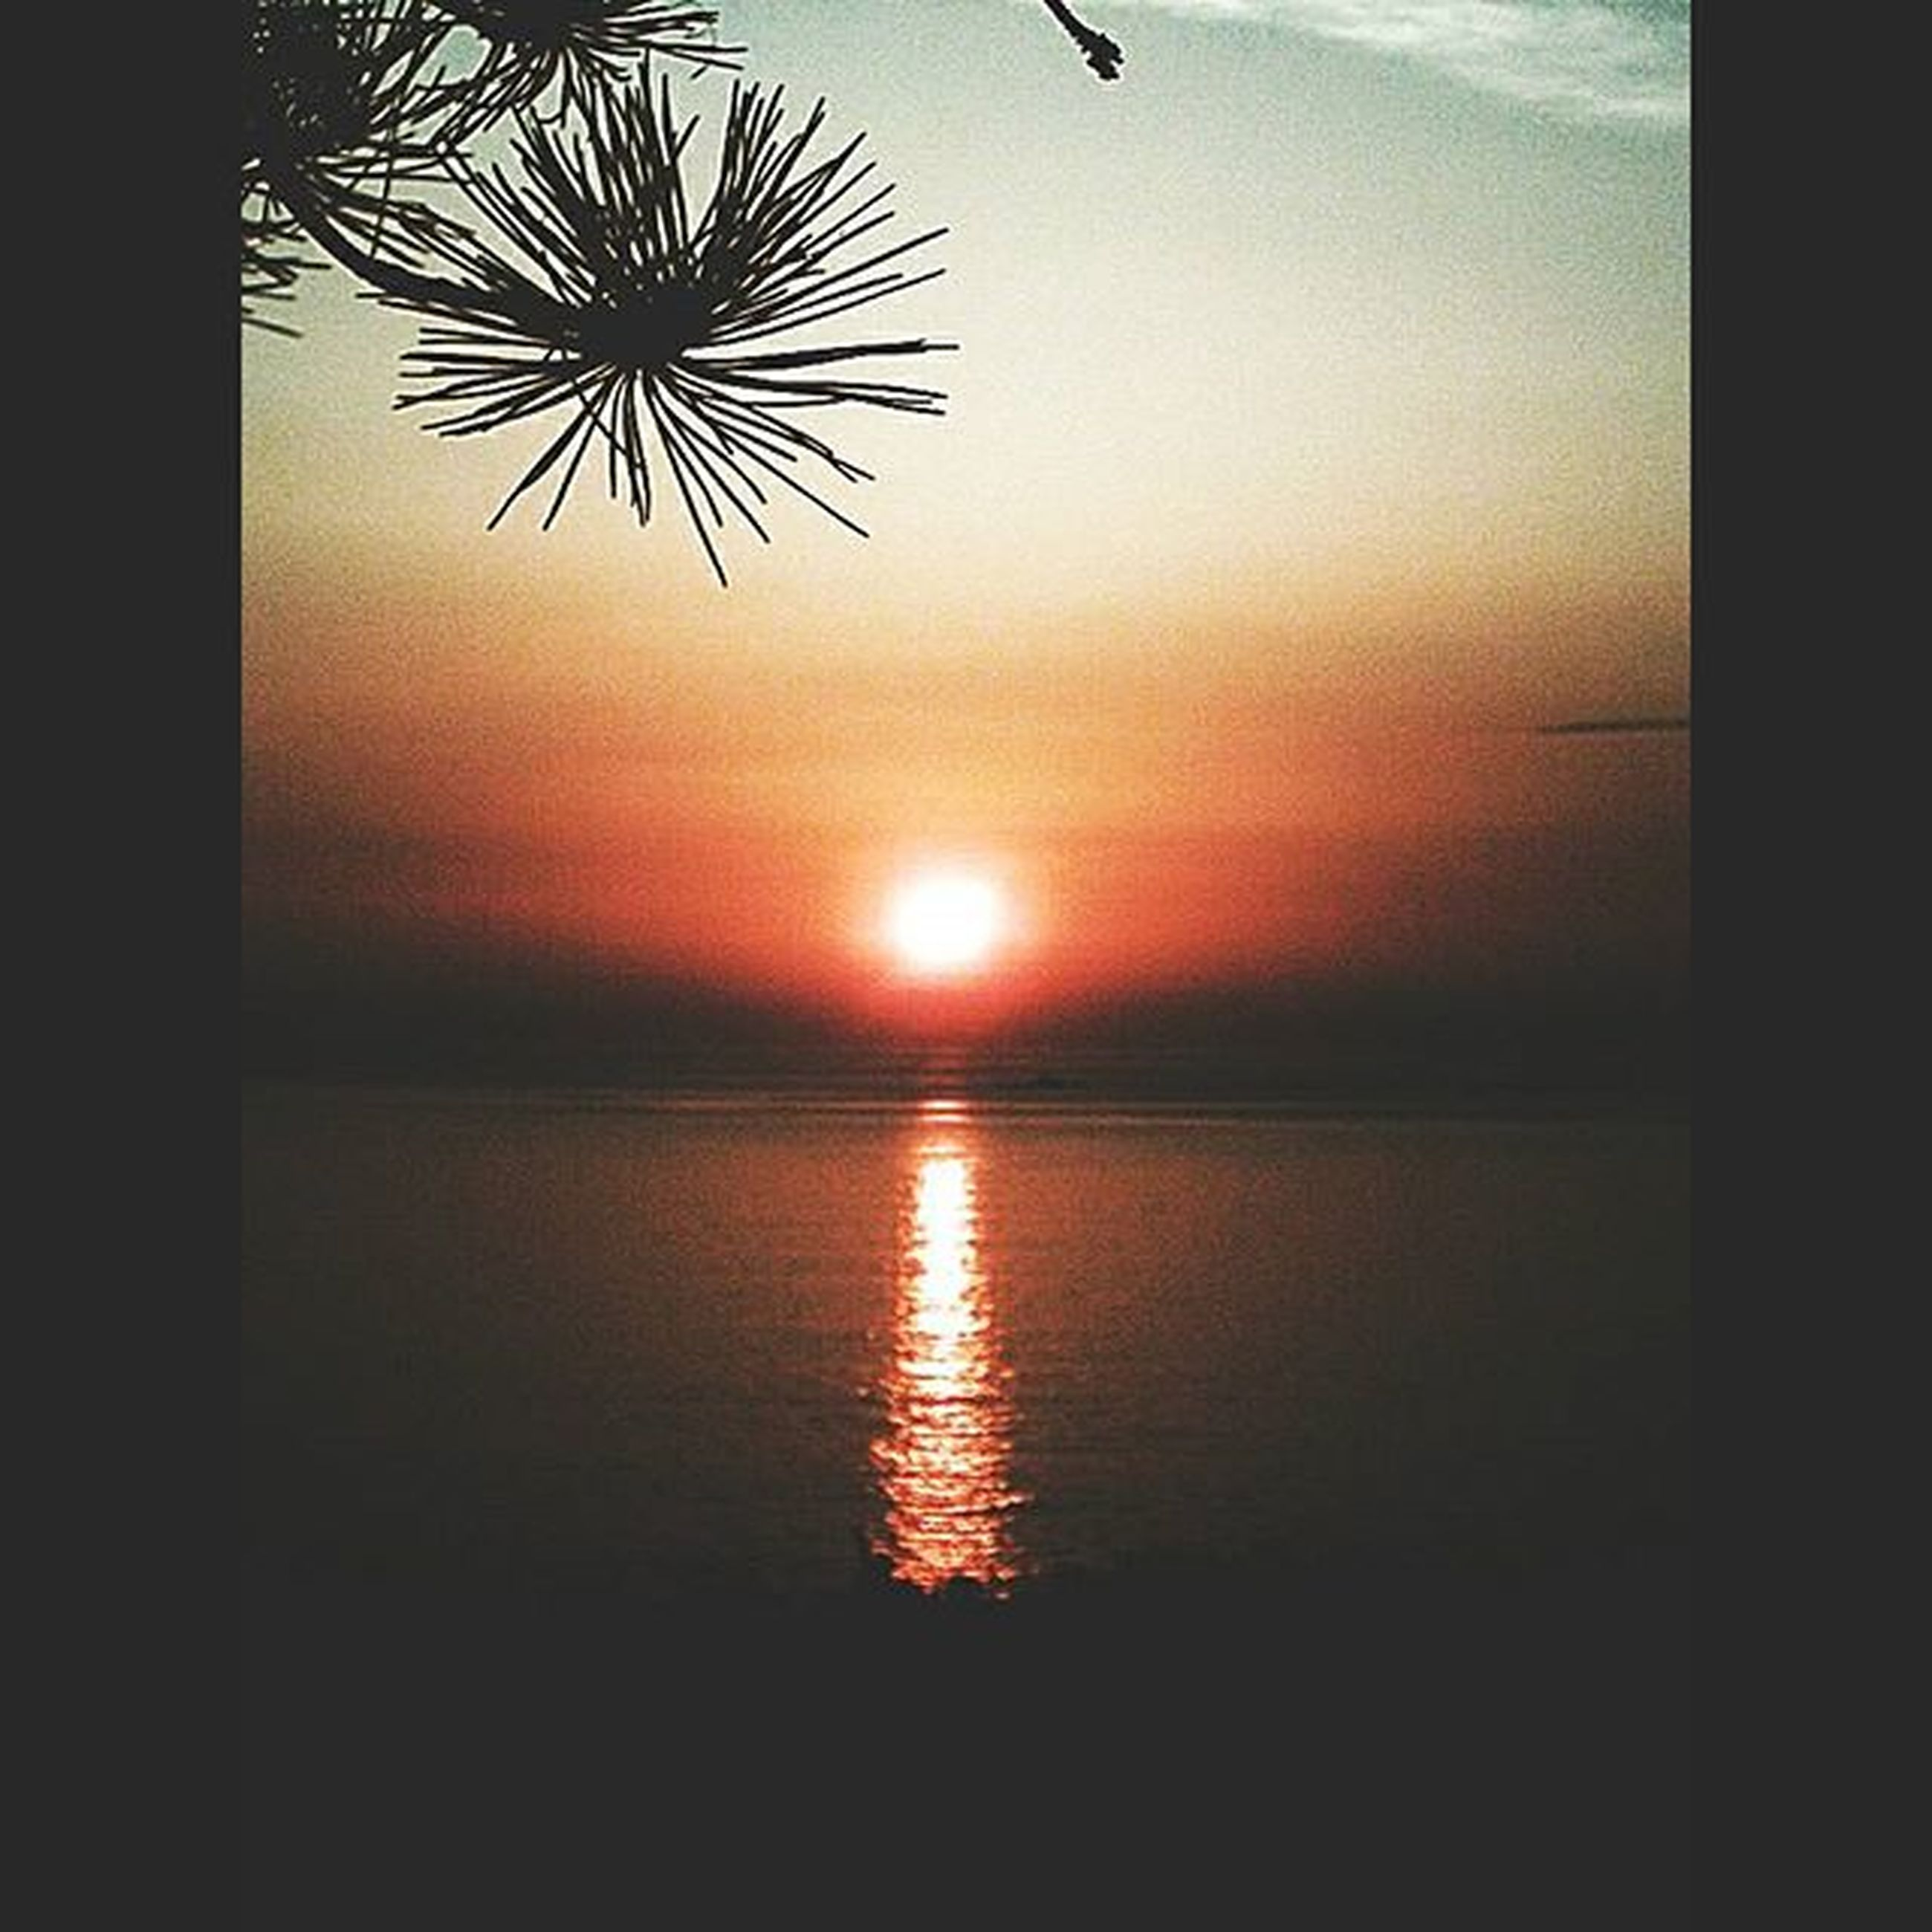 sunset, water, horizon over water, sea, scenics, orange color, sky, sun, reflection, tranquil scene, beauty in nature, tranquility, idyllic, nature, silhouette, waterfront, auto post production filter, cloud - sky, transfer print, no people